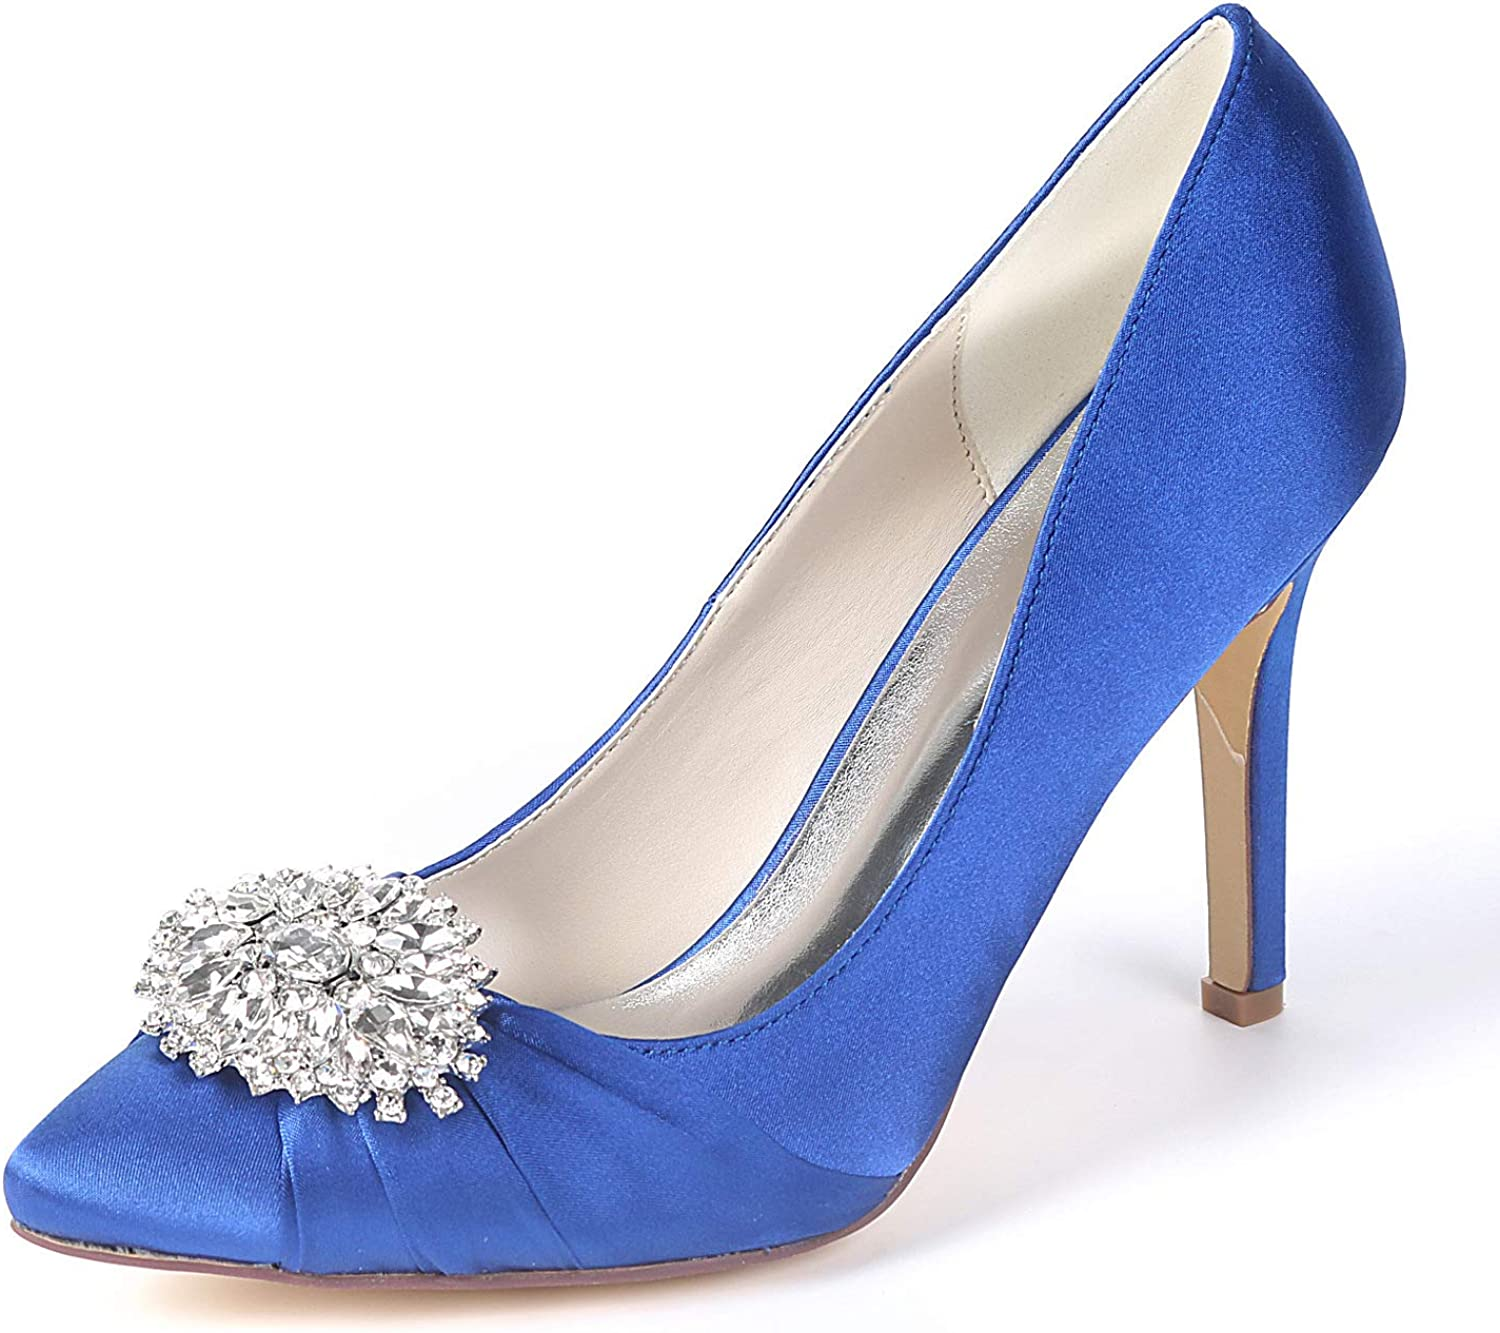 LLBubble Stiletto Heels Pointed Toe Bridal Pumps Satin Formal Party Women shoes 0608-01AB